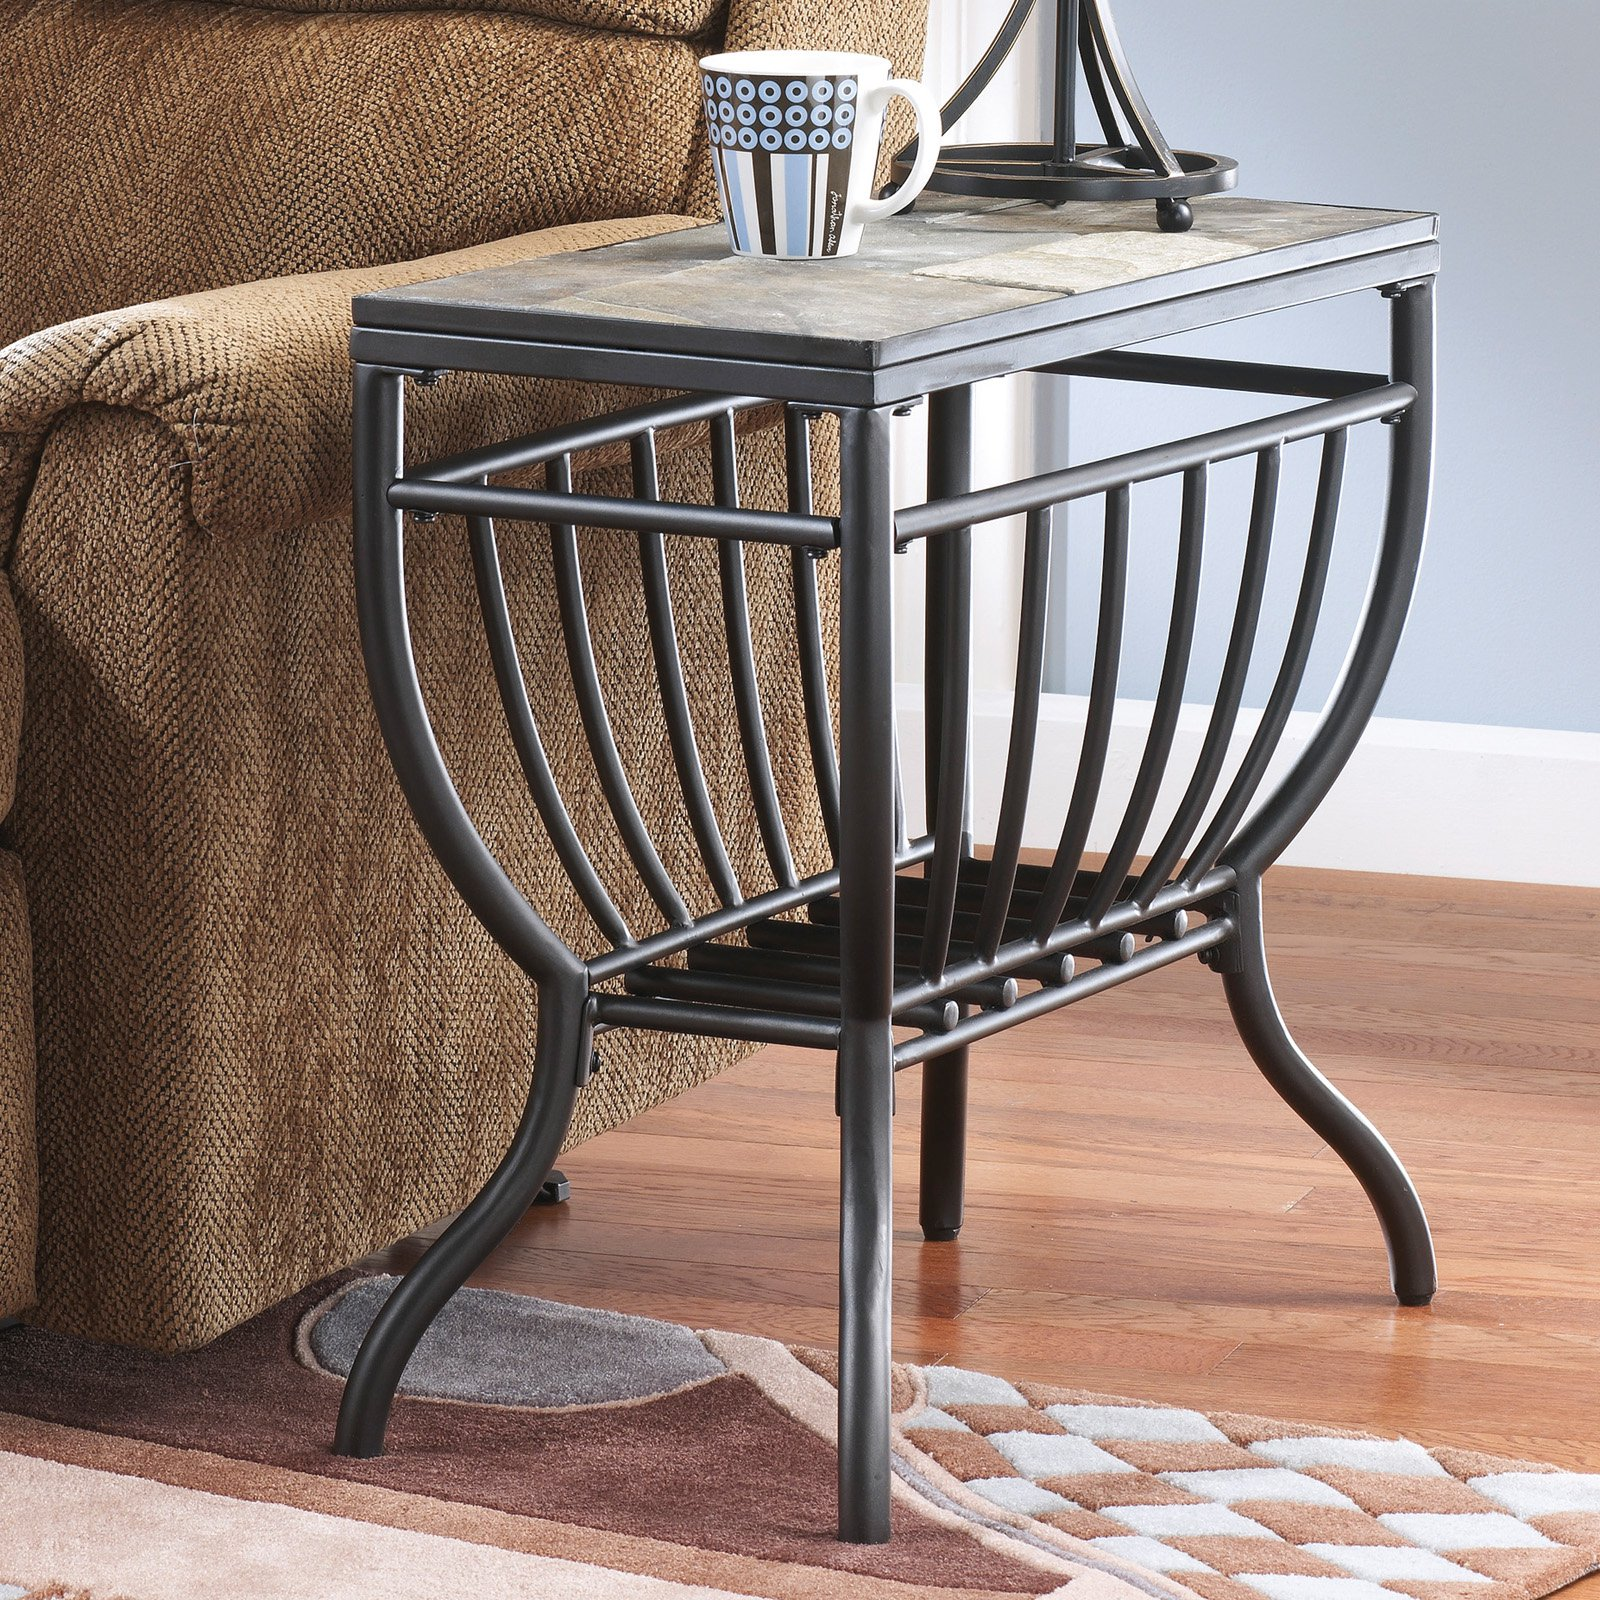 signature design ashley antigo chair side end table black slate small dark brown wrought iron and glass coffee homesense kitchen oak wedge contemporary italian furniture chalk